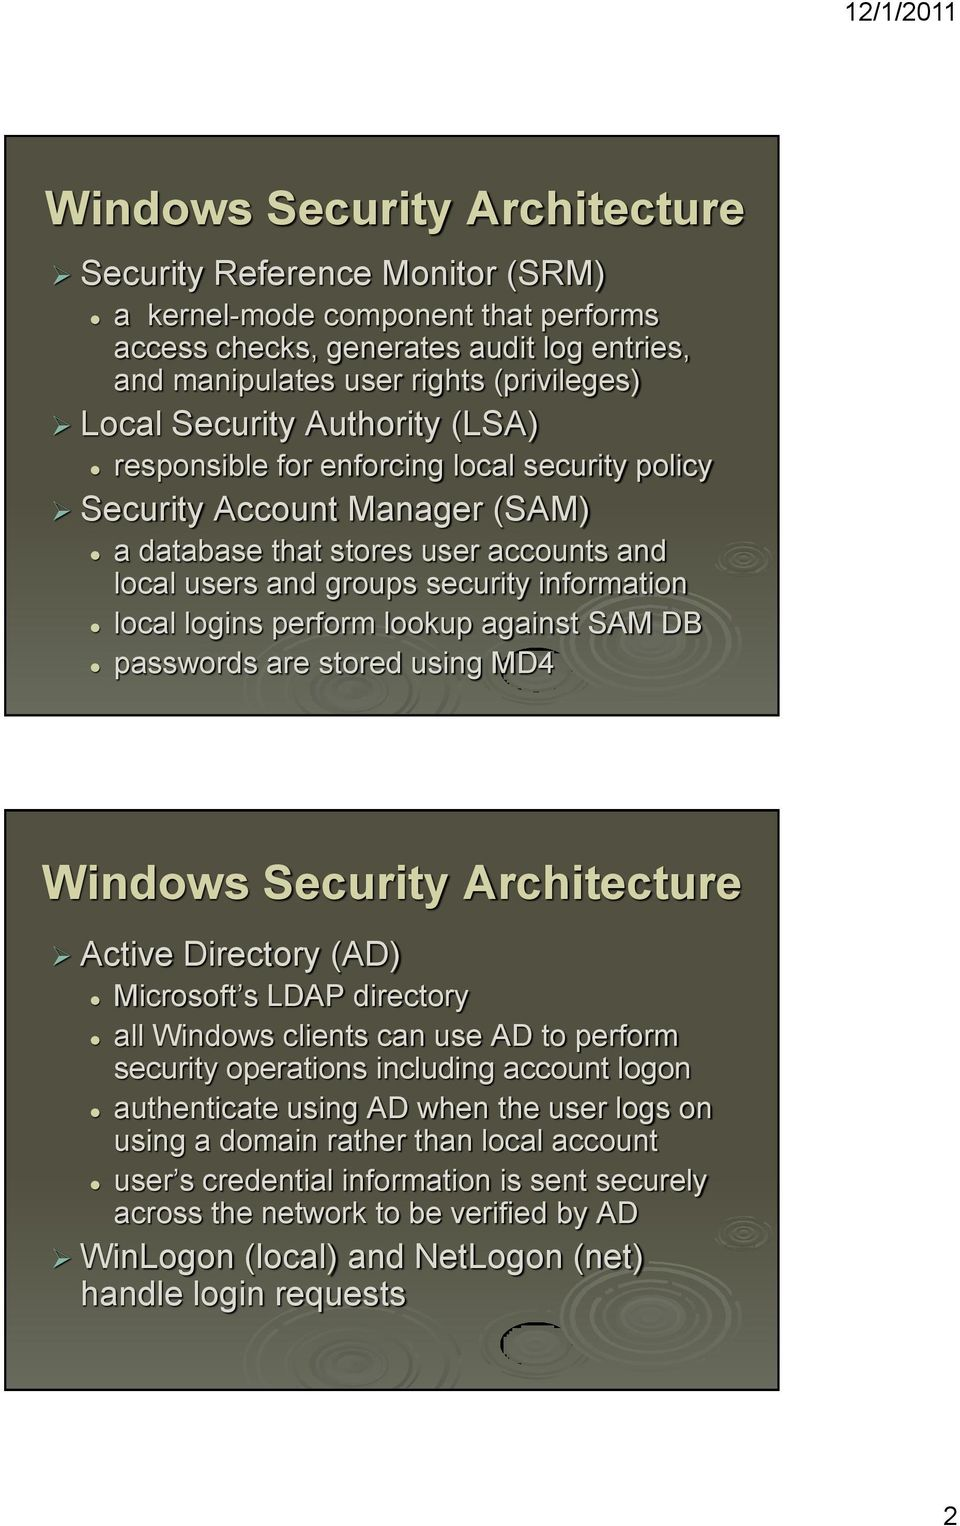 logins perform lookup against SAM DB passwords are stored using MD4 Windows Security Architecture Active Directory (AD) Microsoft s LDAP directory all Windows clients can use AD to perform security